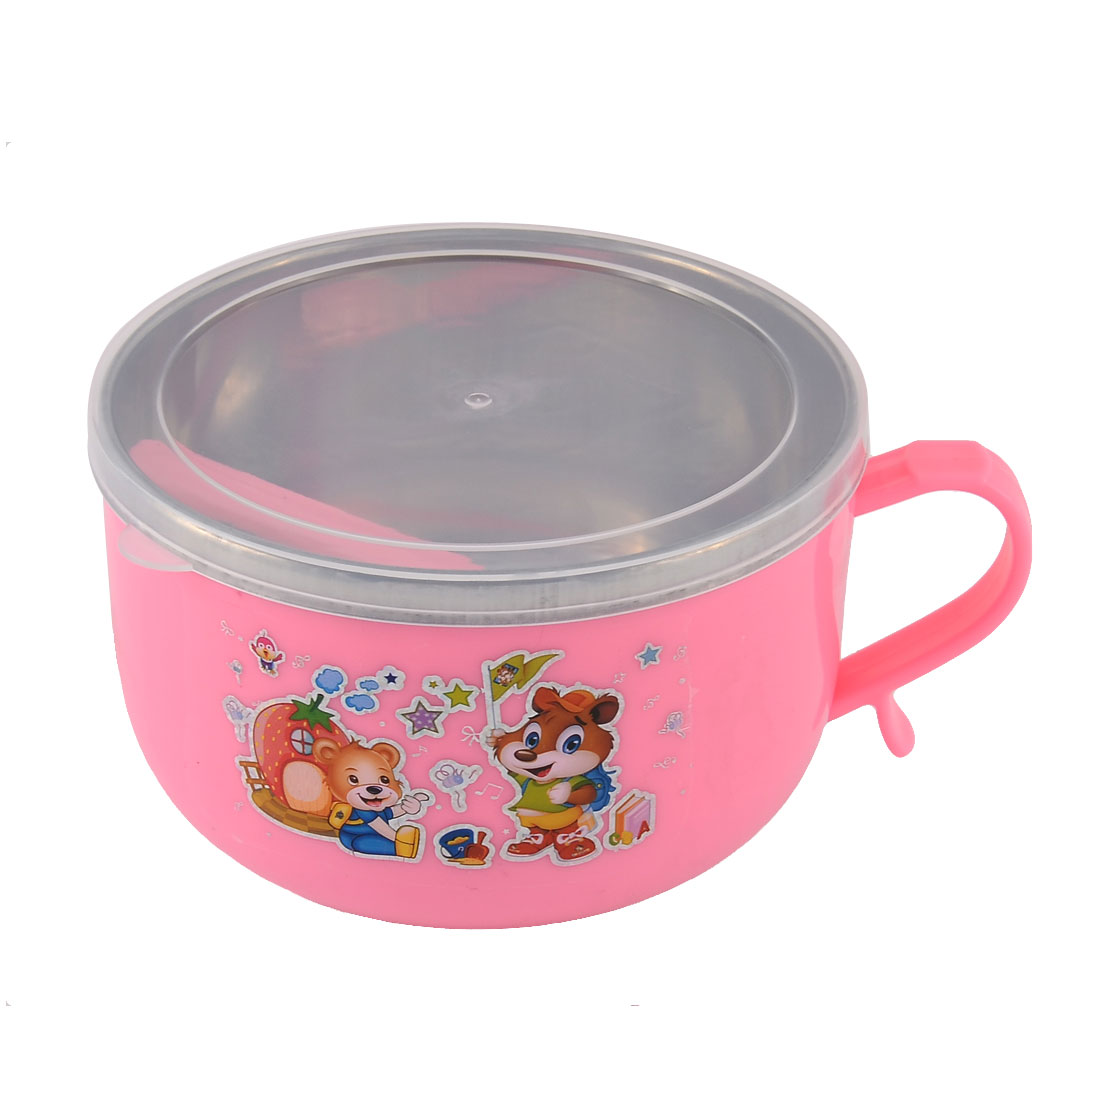 Home School Picnic Camping Double Layers Lunch Box Container Pink w Spoon